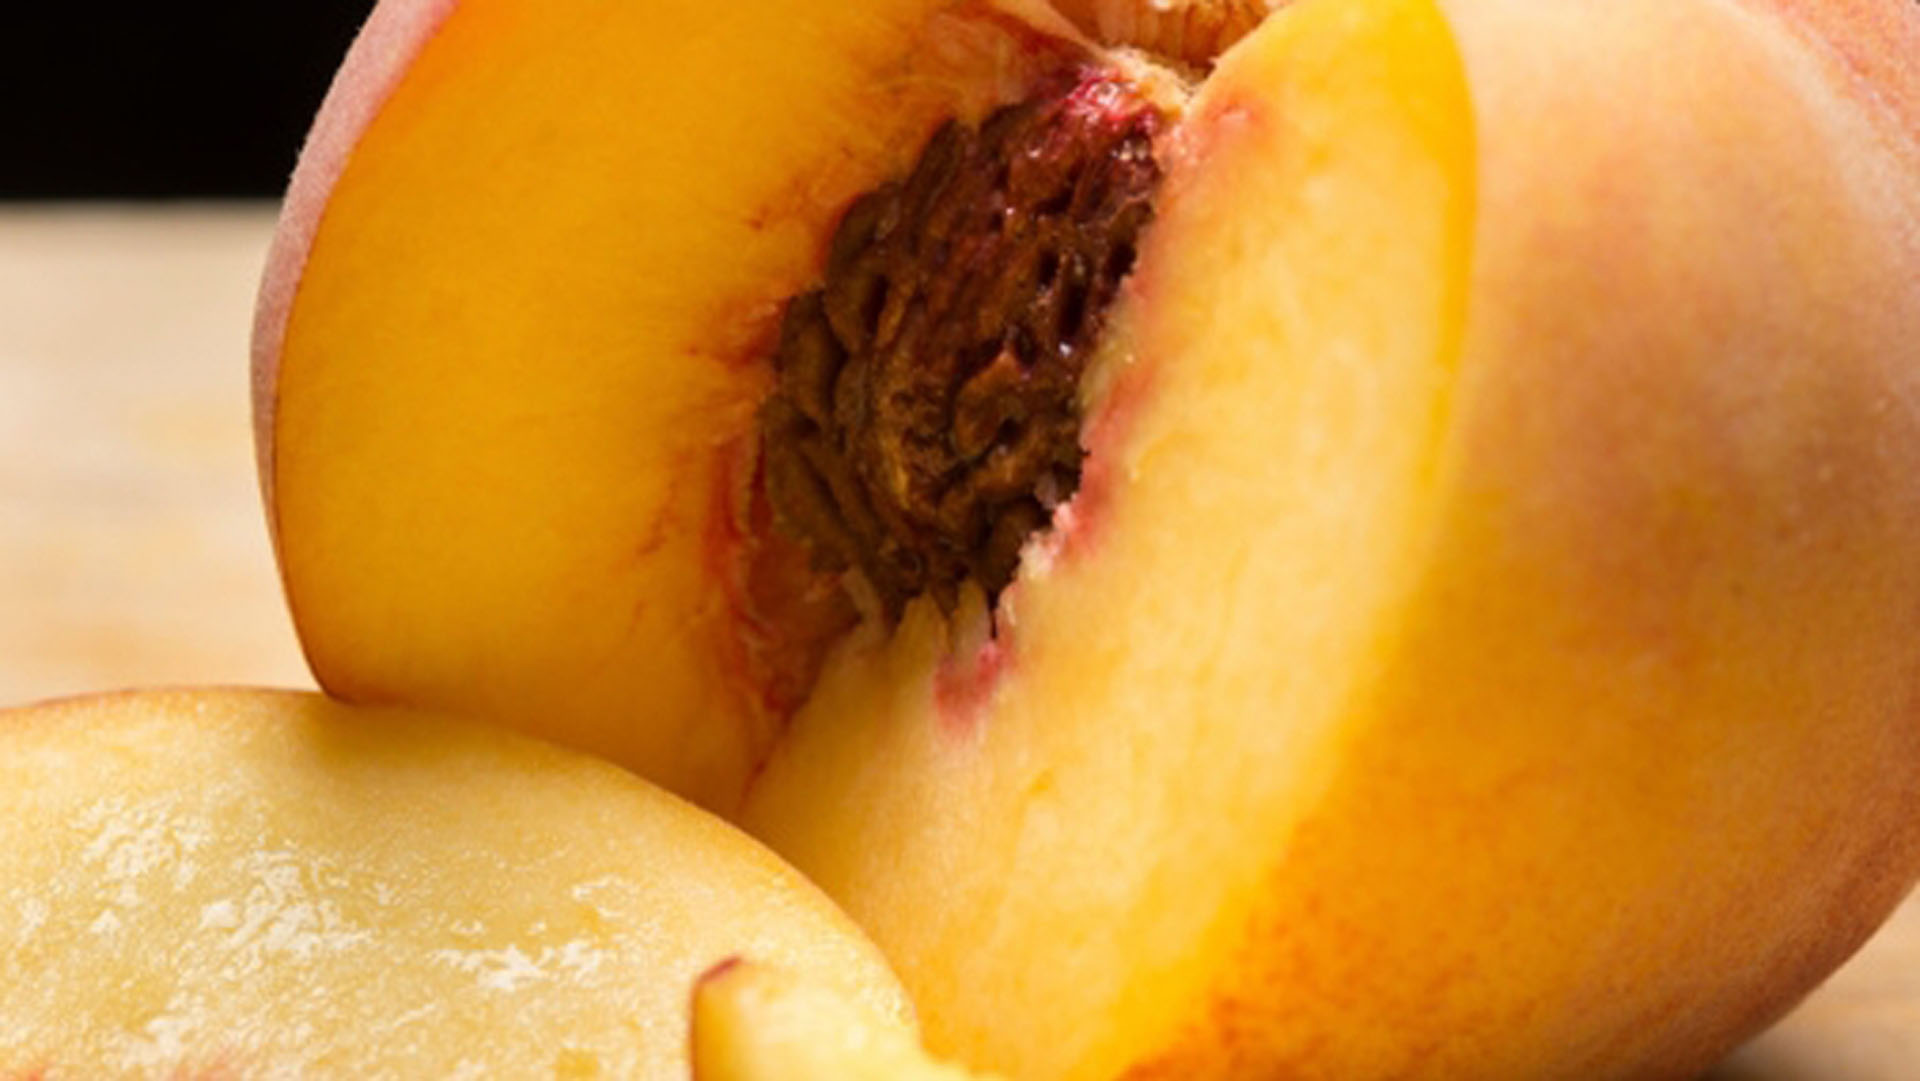 7-reasons-to-eat-more-stone-fruit